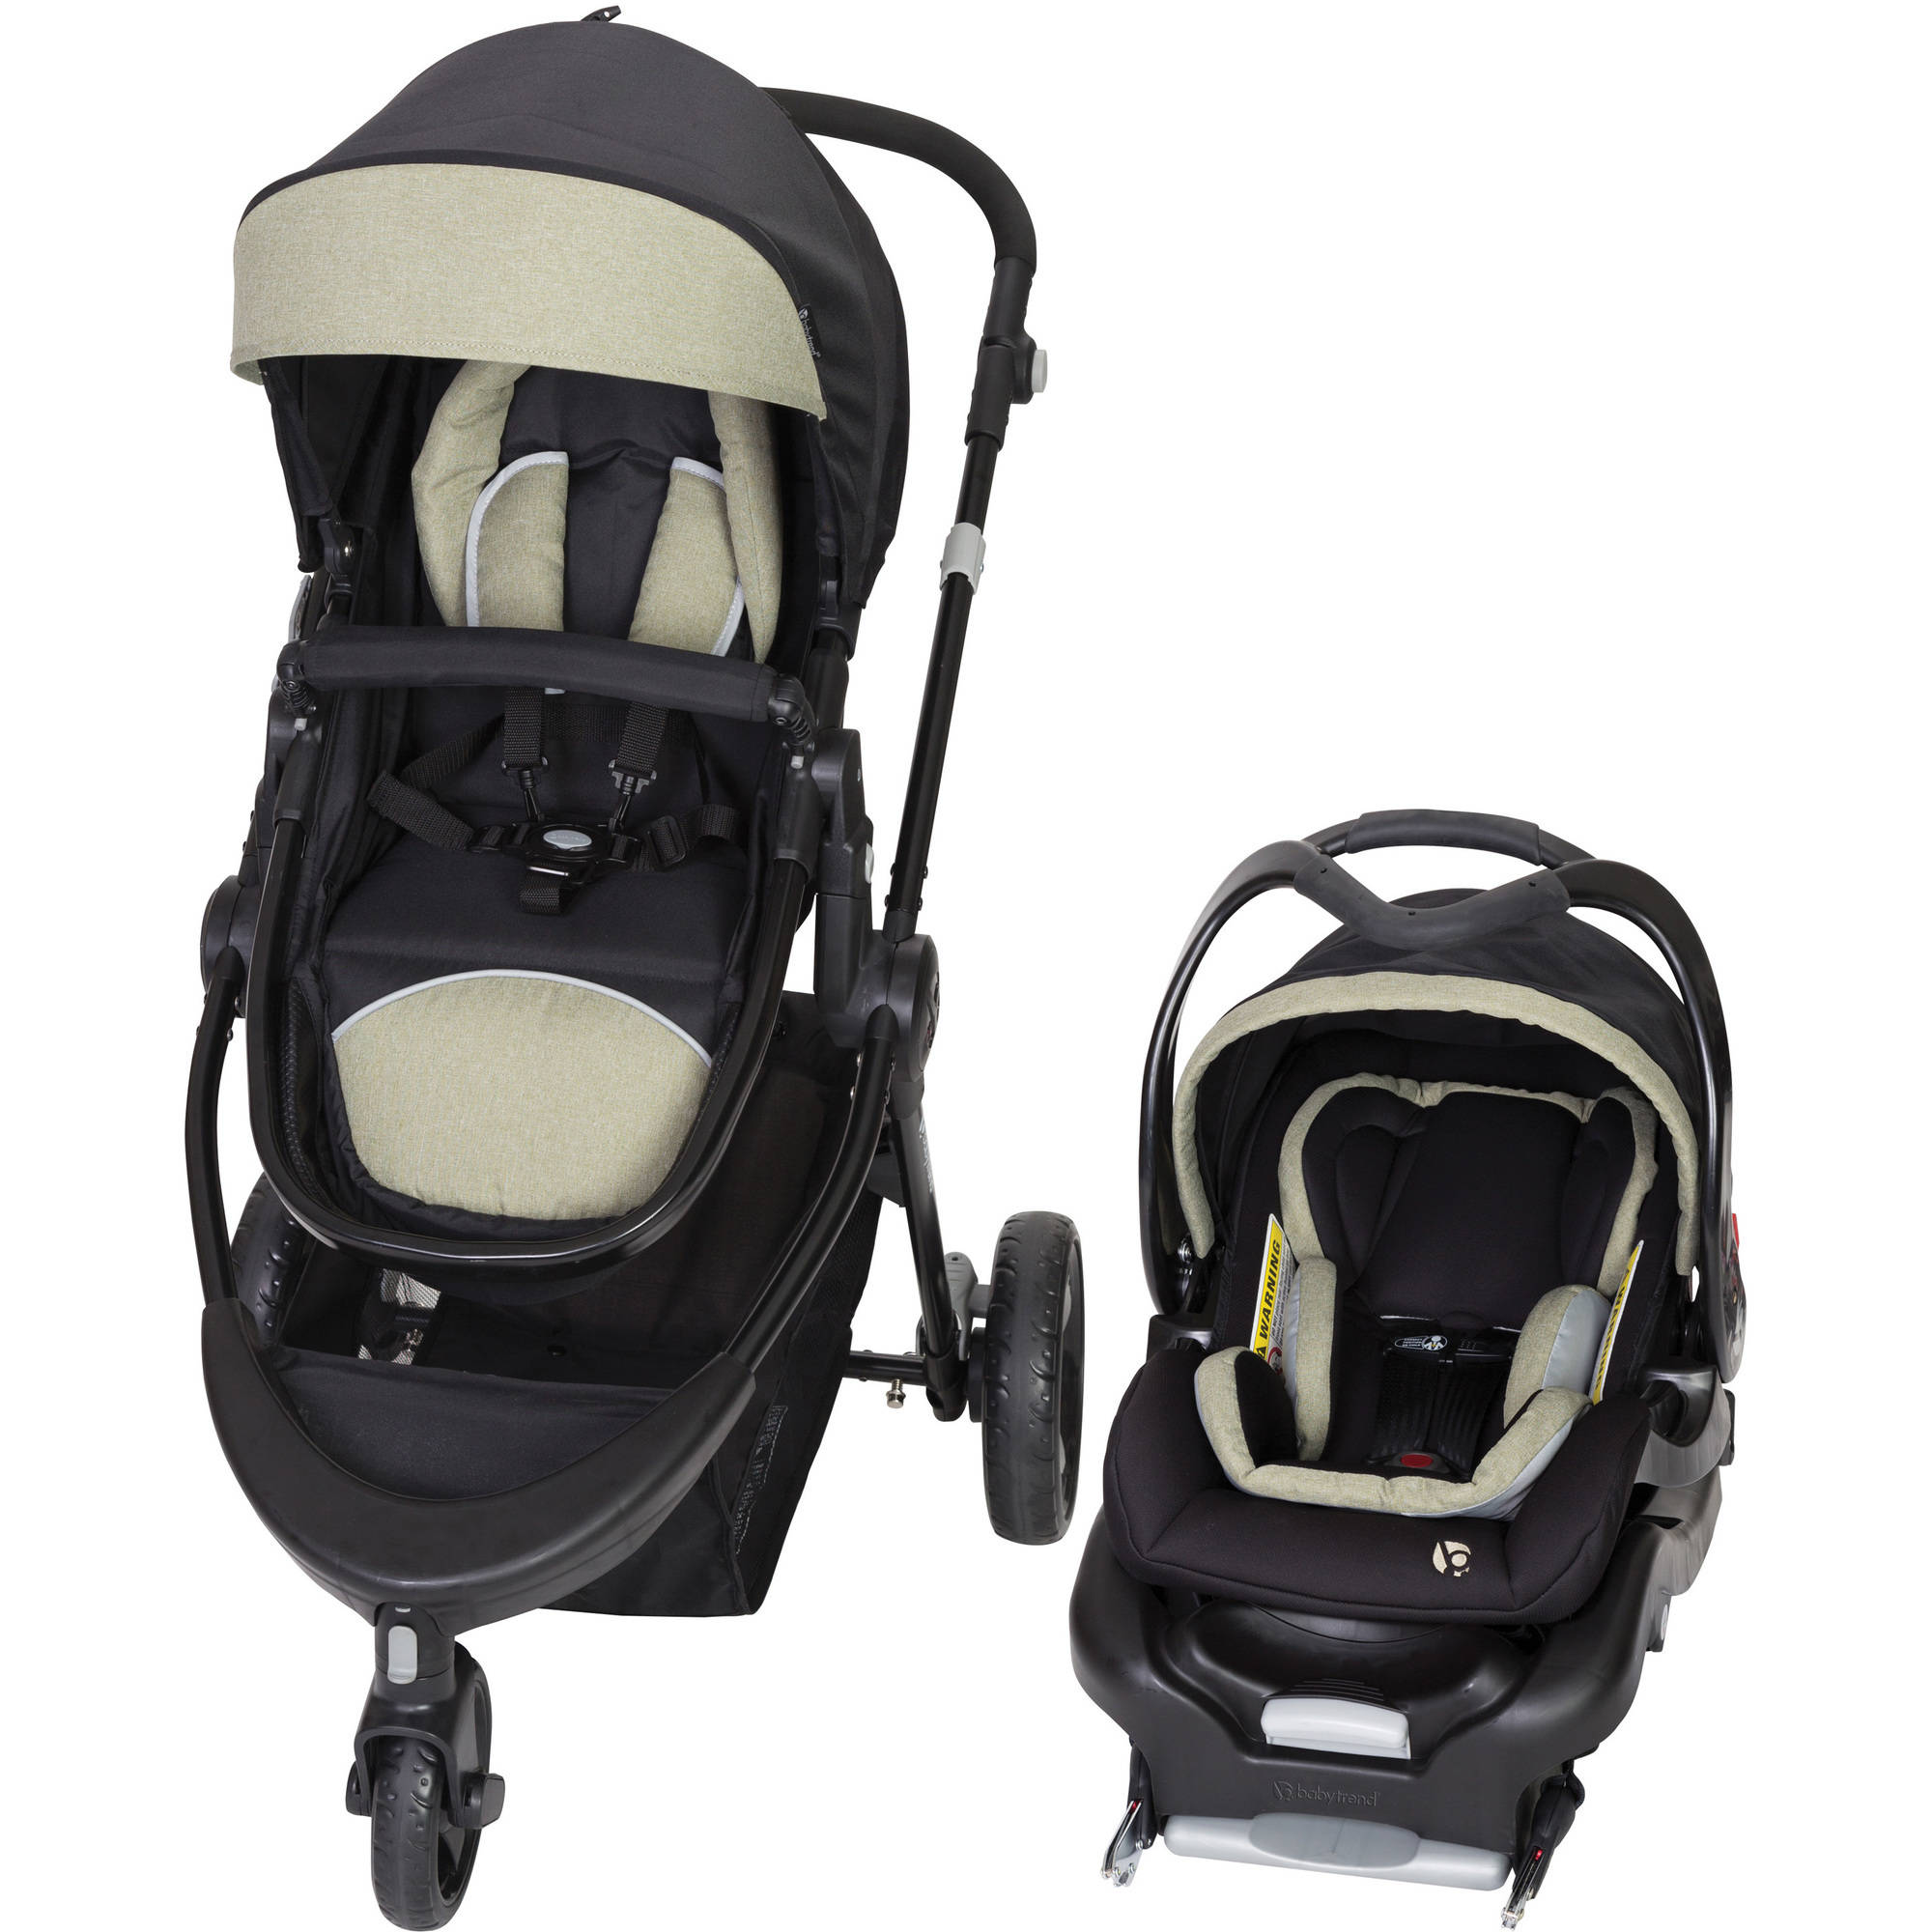 Charmant Baby Trend 1st Debut 3 Wheel Travel System, Serene Green